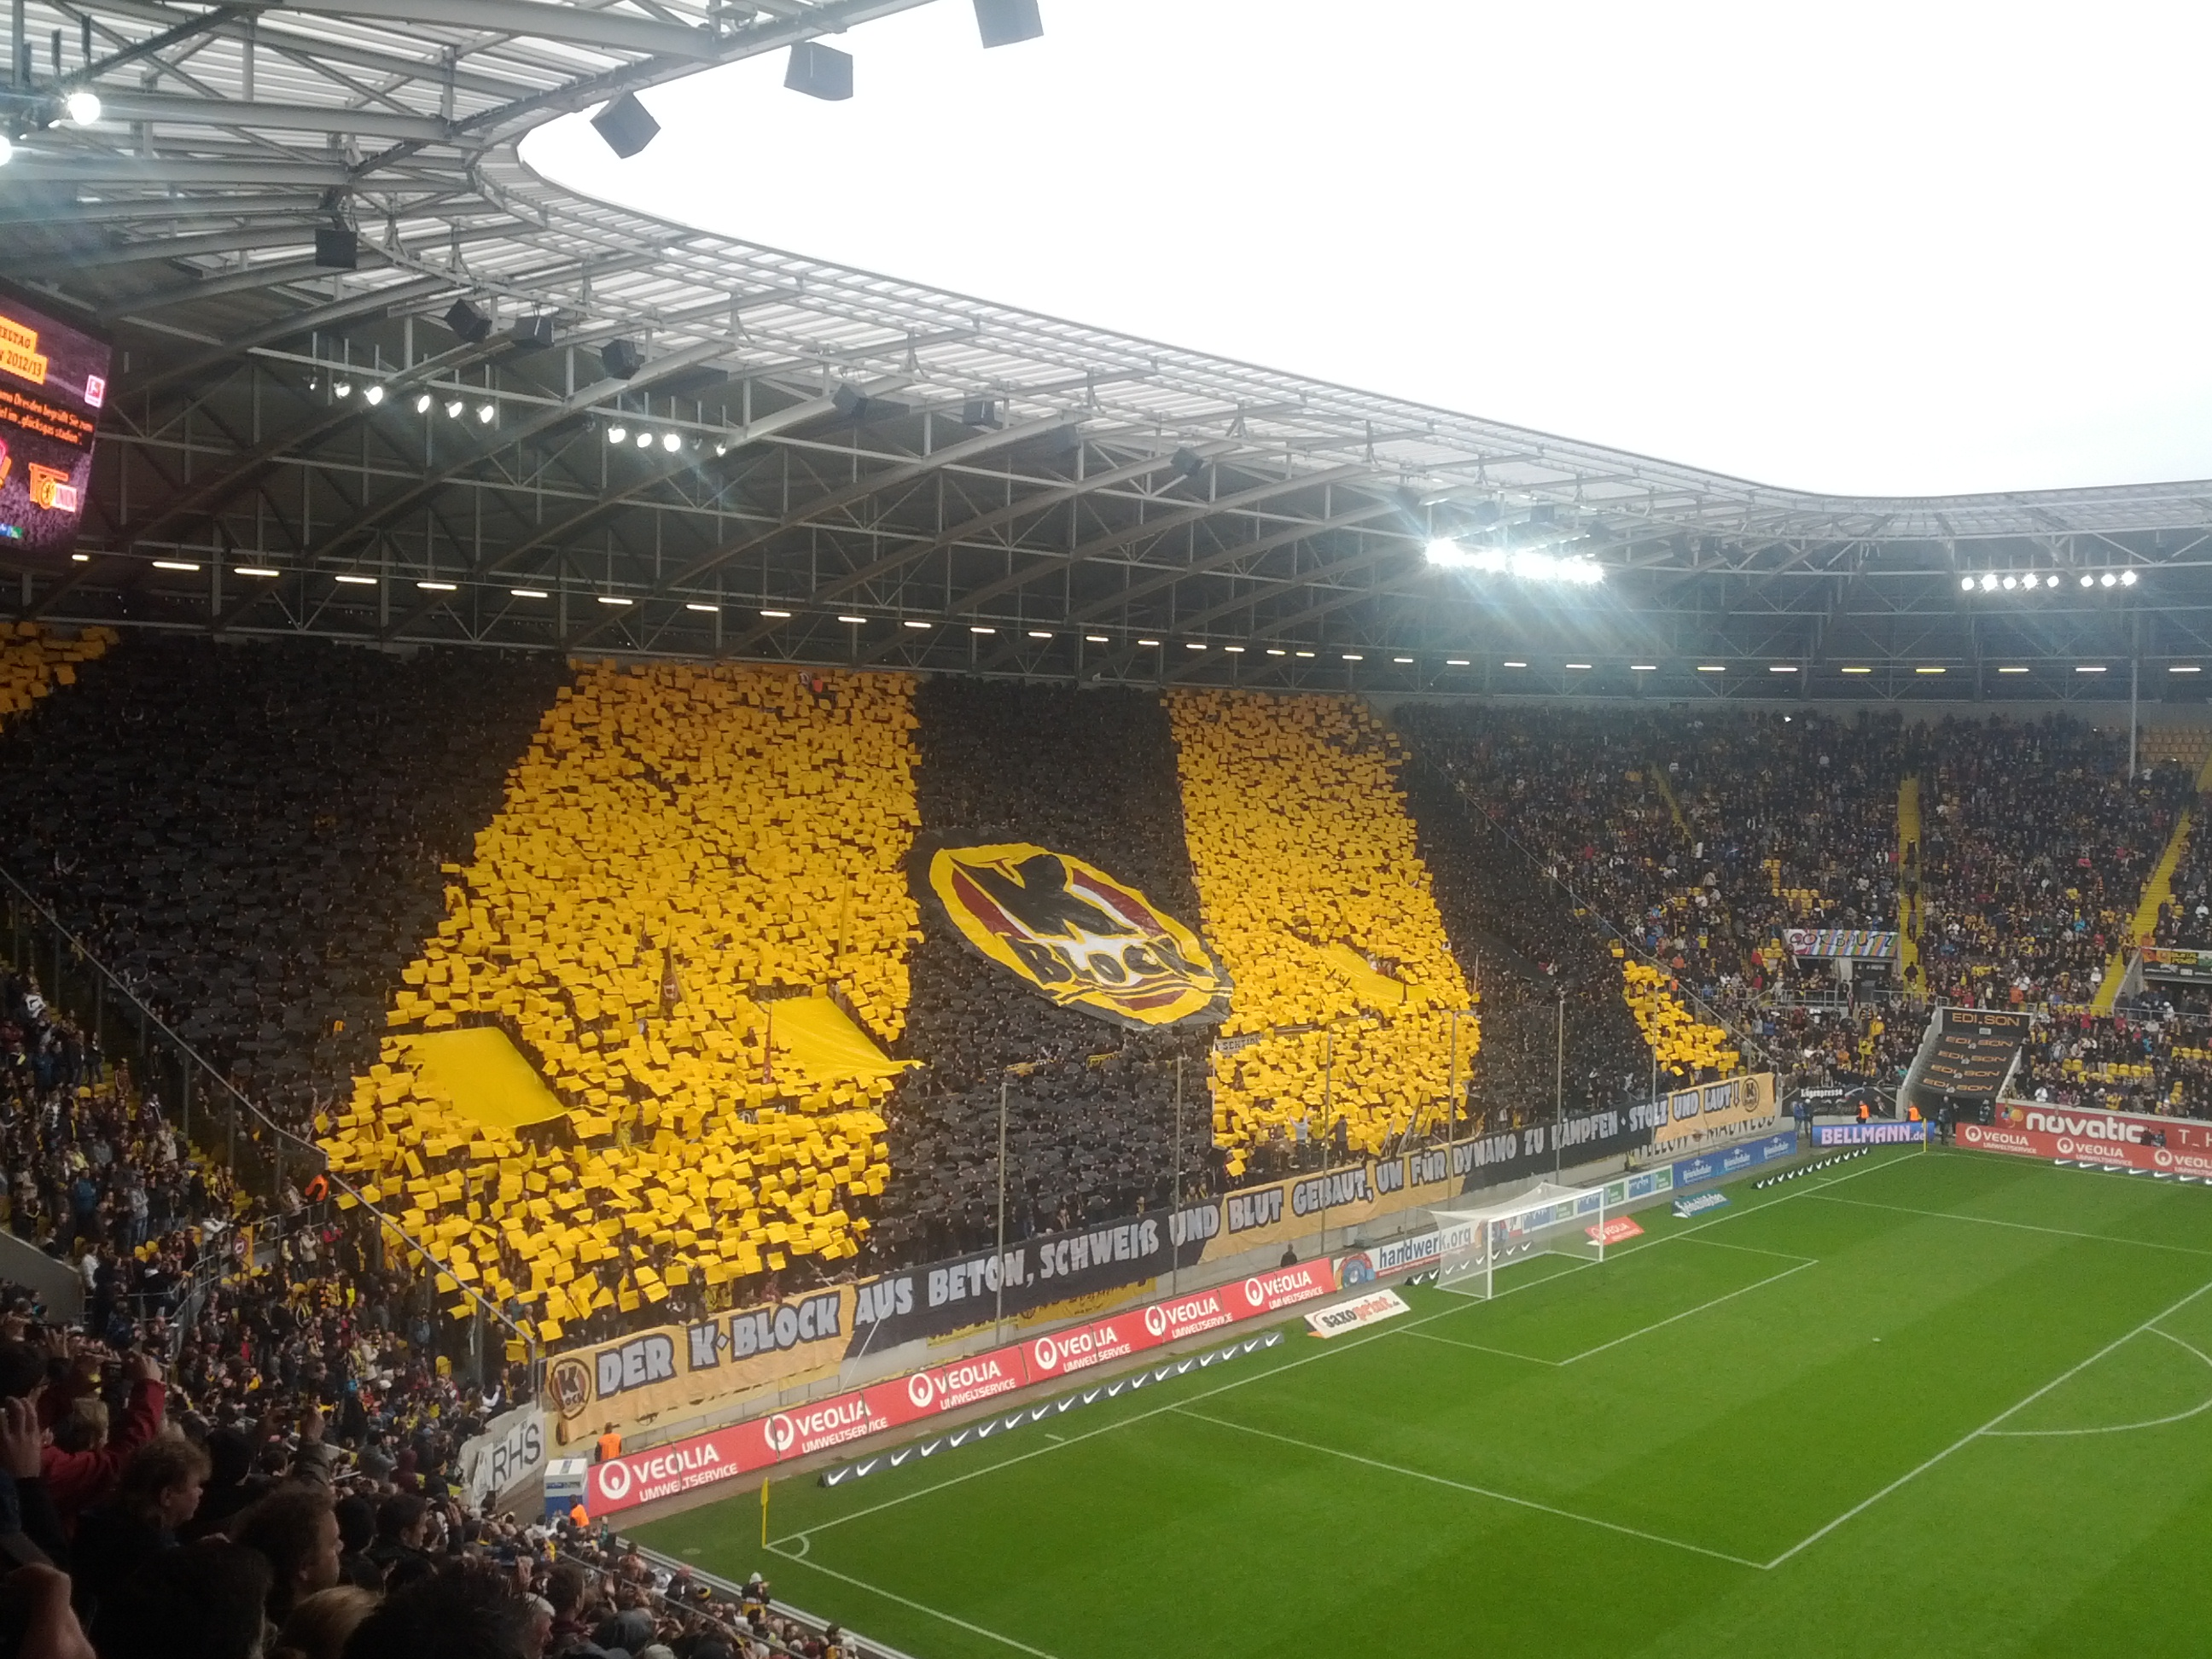 Description Dynamo Dresden kblock.jpg